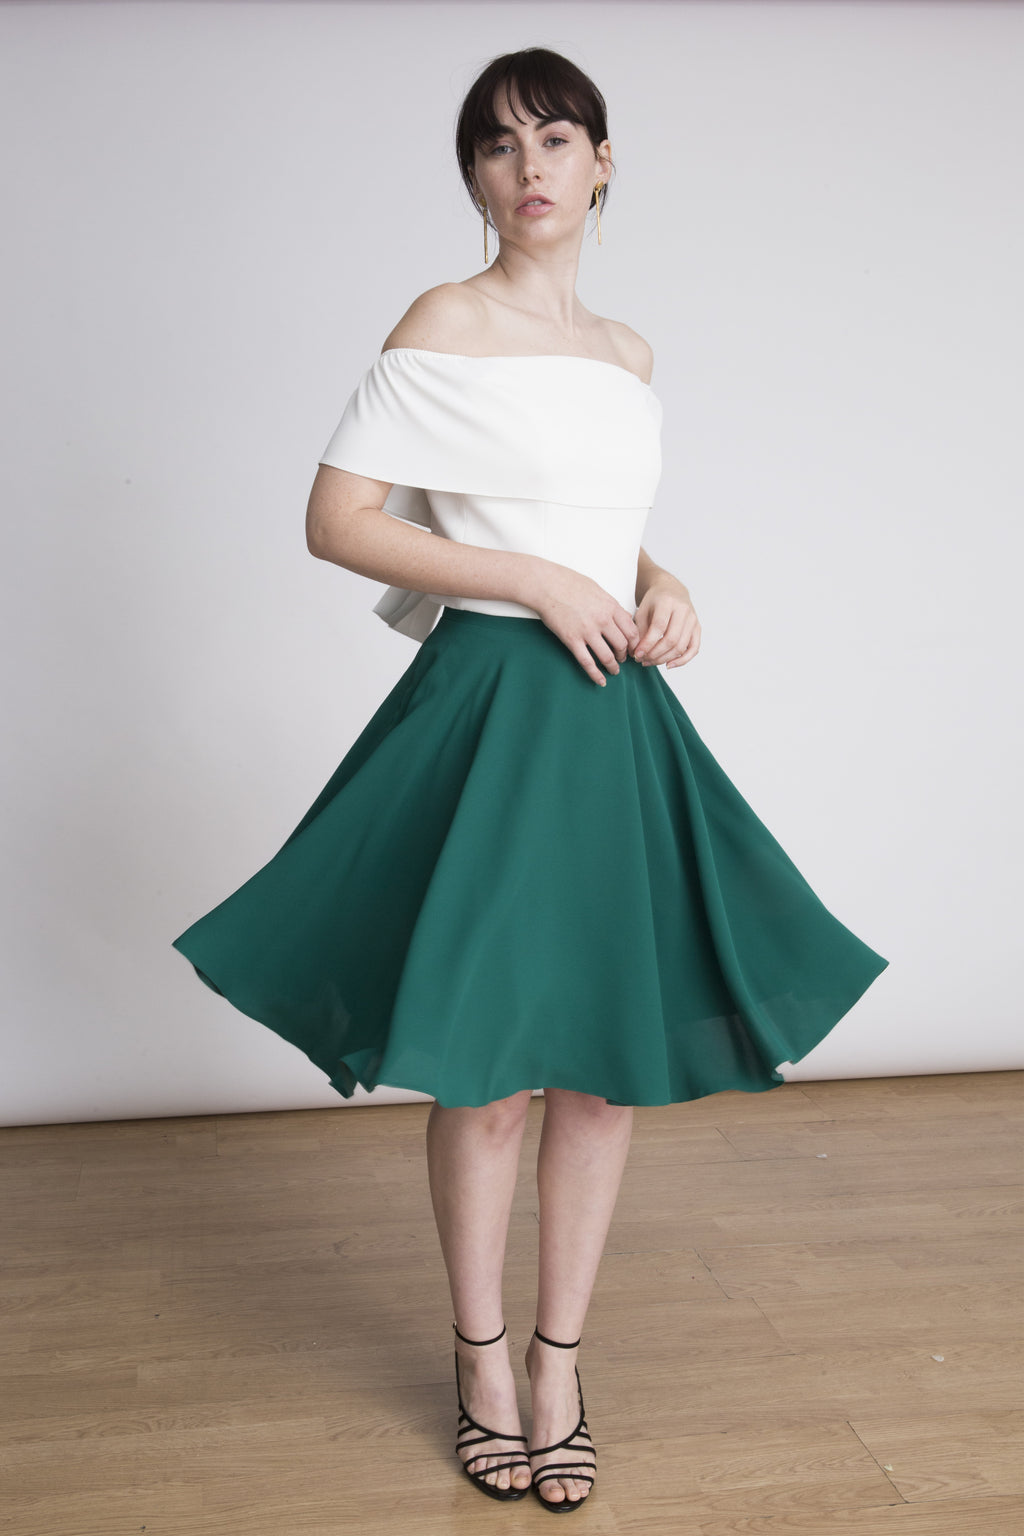 Lauren Lynn London mini / midi Skirt in green colour. Made in light crepe and fully lined. This skirt is perfect for formal events and weddings. Falda verde de Lauren Lynn por encima de la rodilla. Esta falda perfecta para bodas de día, bautizos y comuniones. La falda Claire está completamente forrada y realizada en un ligero crepé.